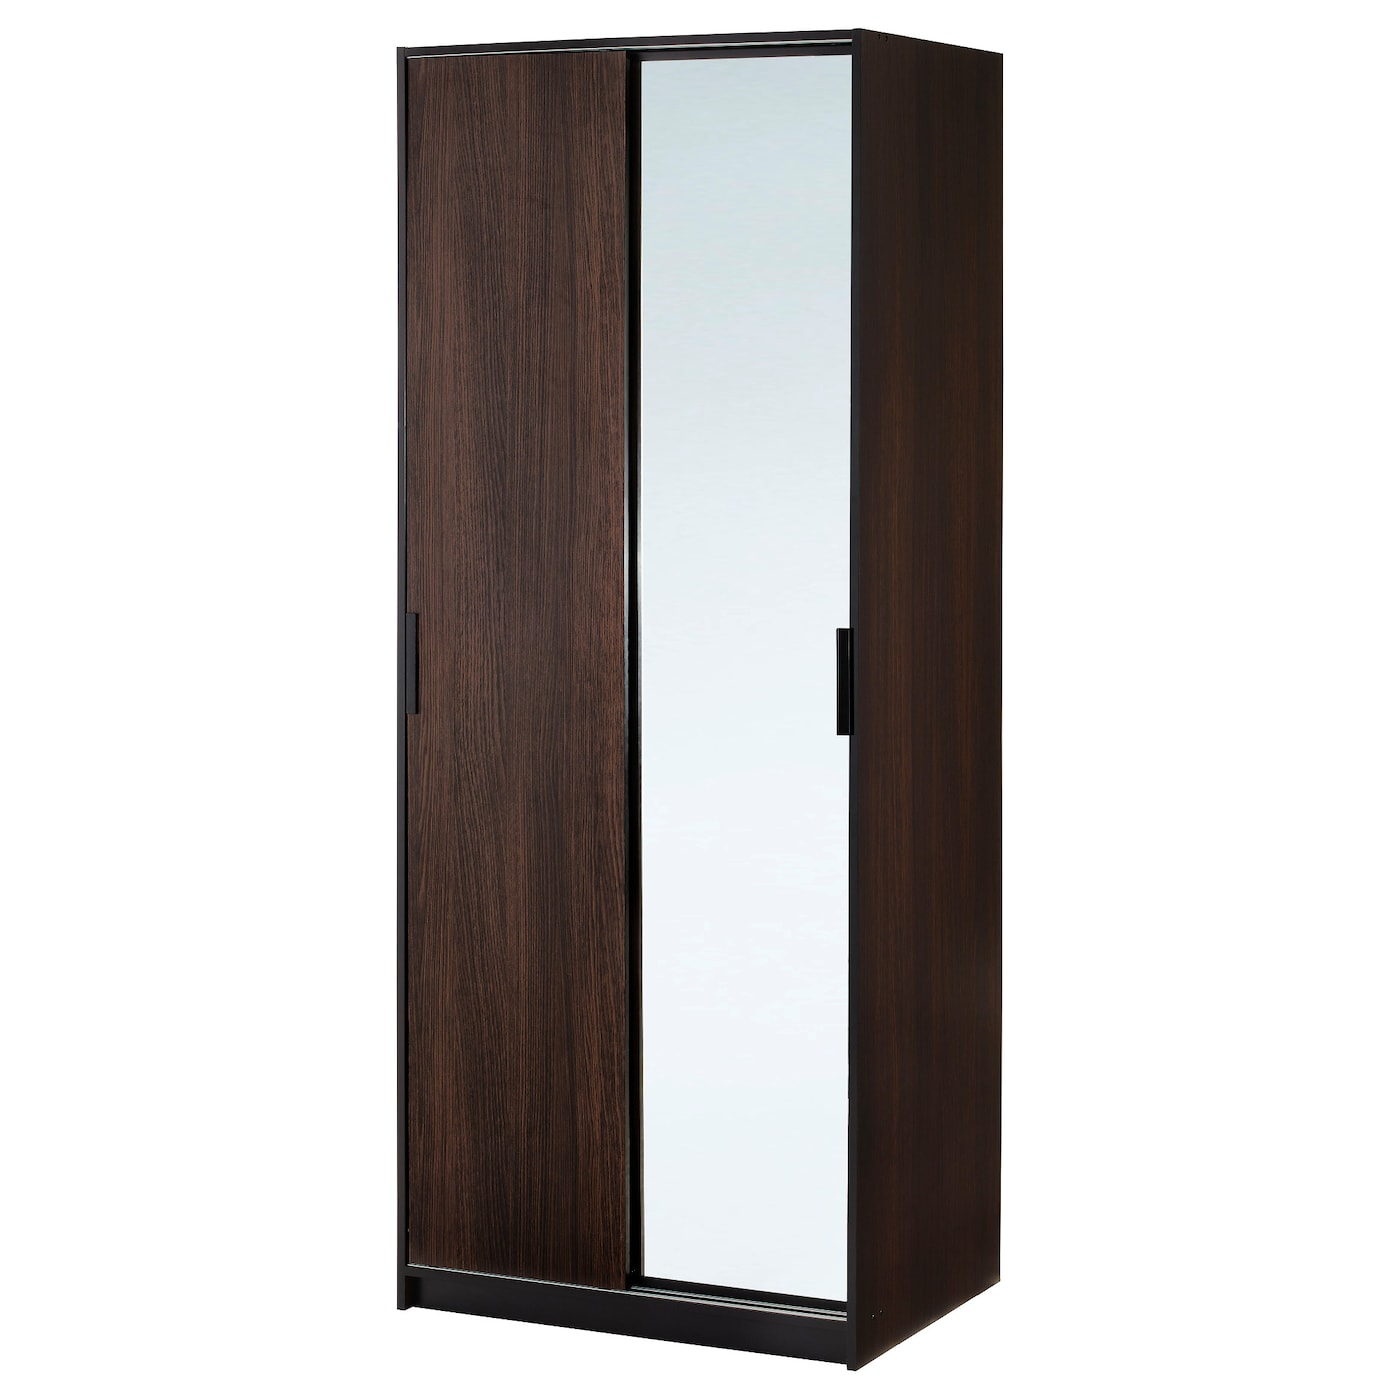 Trysil wardrobe w sliding doors 4 drawers white 118x61x202 for Porte pliante 60 pouces